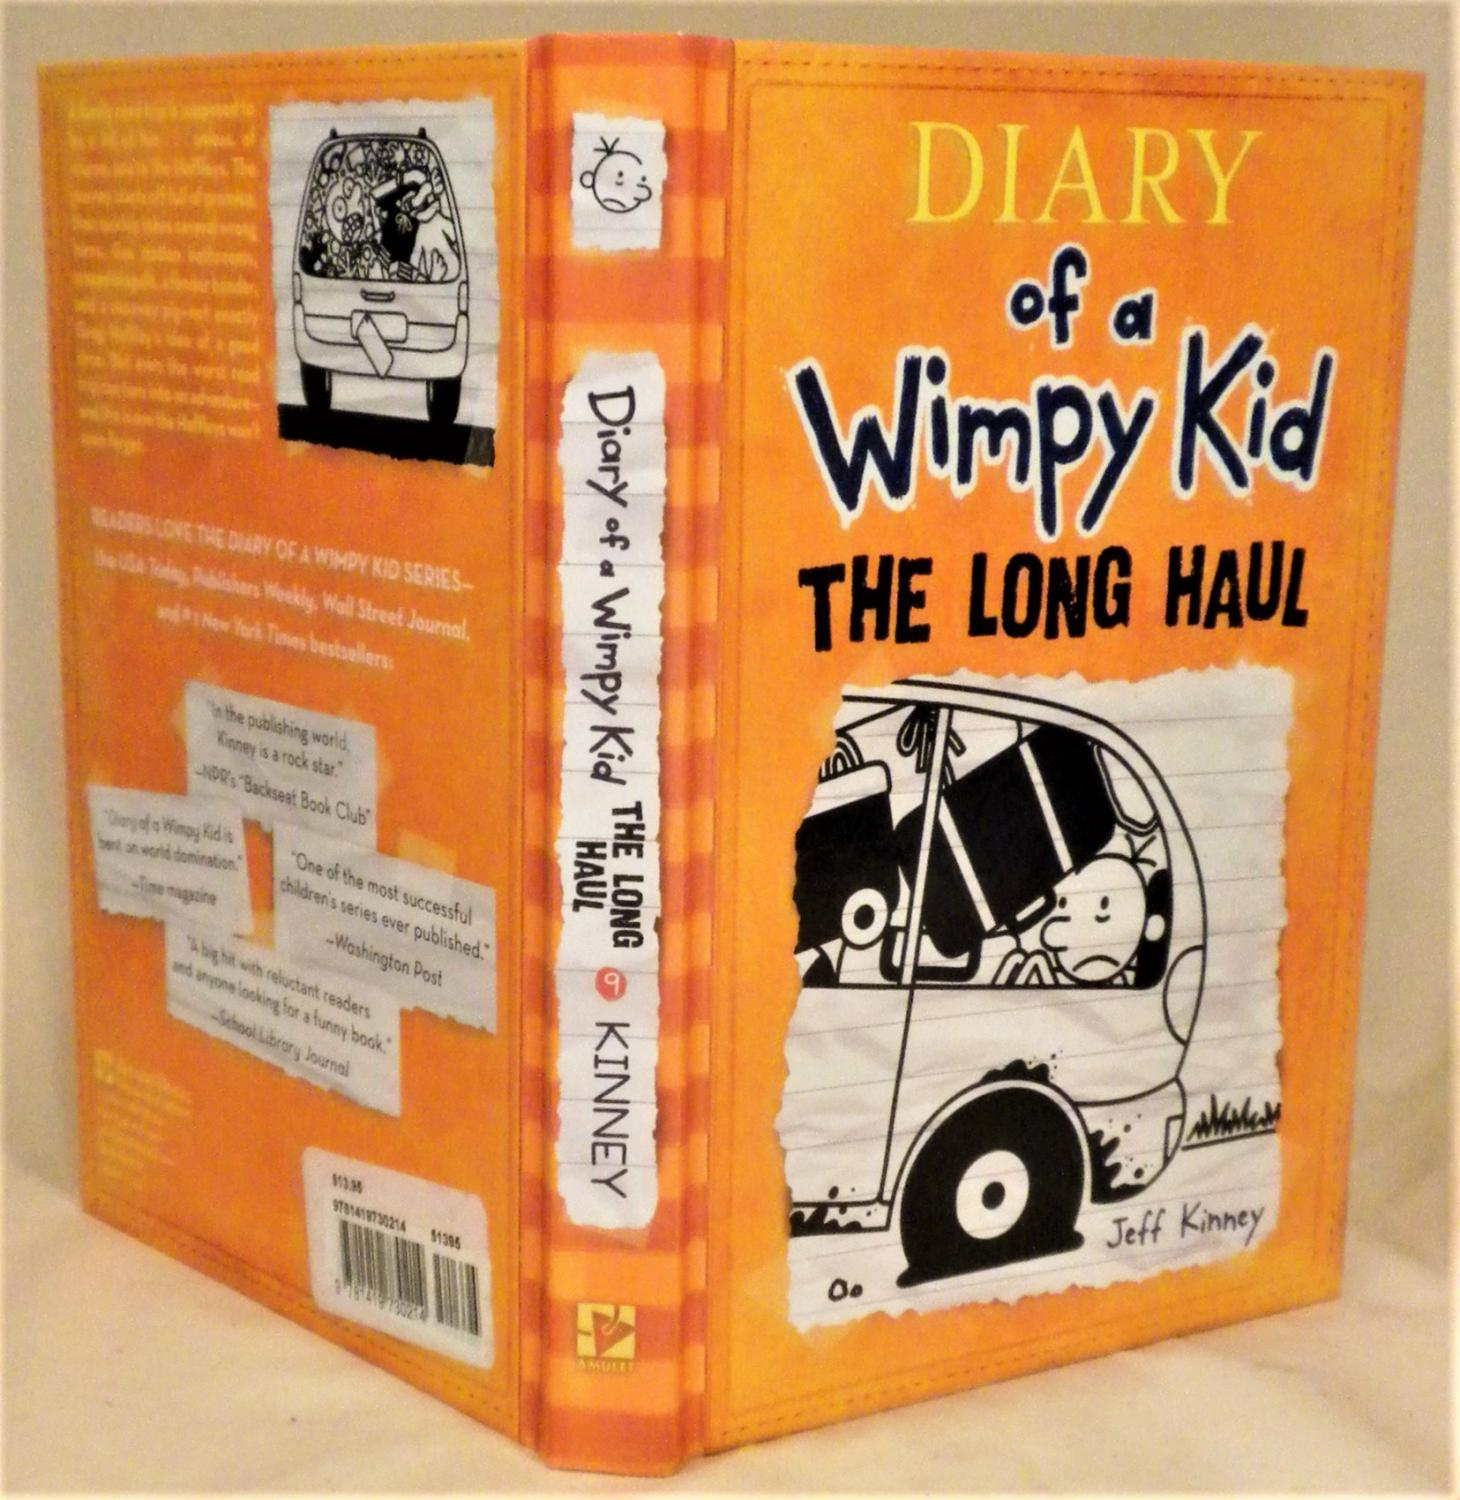 Diary Of A Wimpy Kid The Long Haul By Jeff Kinney New Hardcover 2014 1st Edition Signed By Author S Armadillo Alley Books